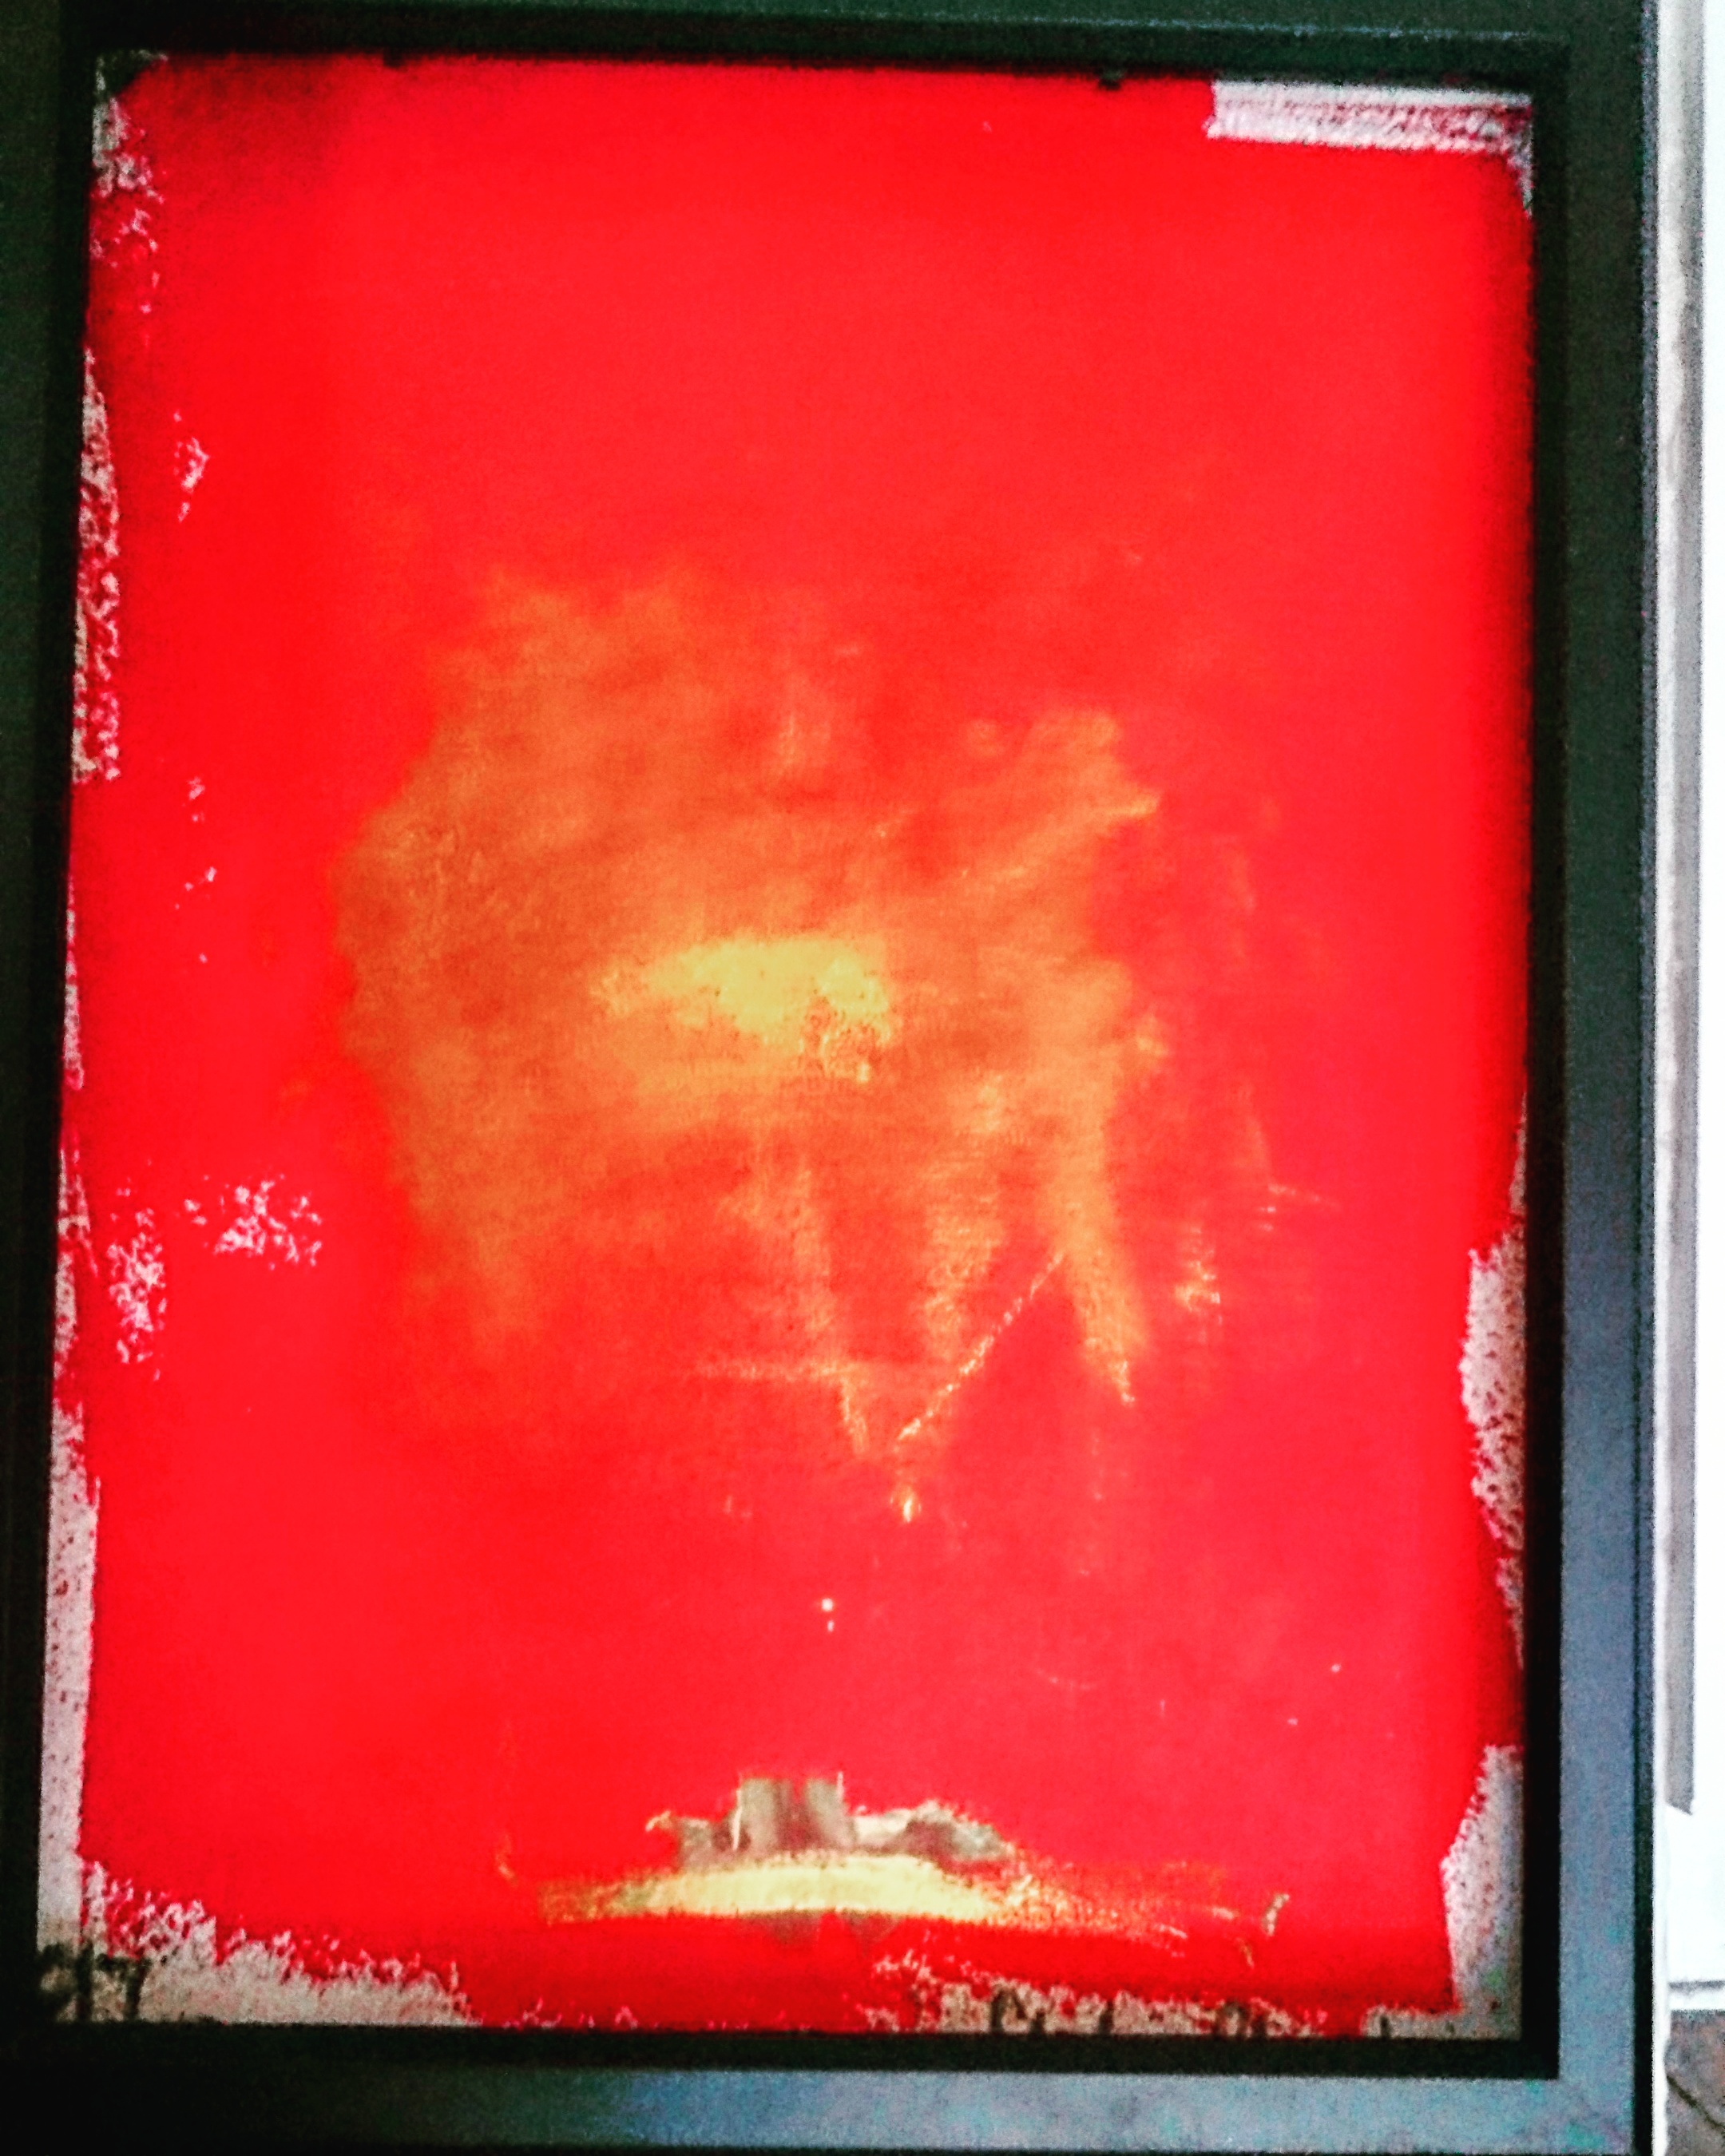 """Cover-image: """"rouge essentialles,"""" oil on handmade paper, by Stefan Chazbijewicz (c) August 2017. On exhibition by Glaza Art Gallery, Gdańsk, Poland. Used by permission."""